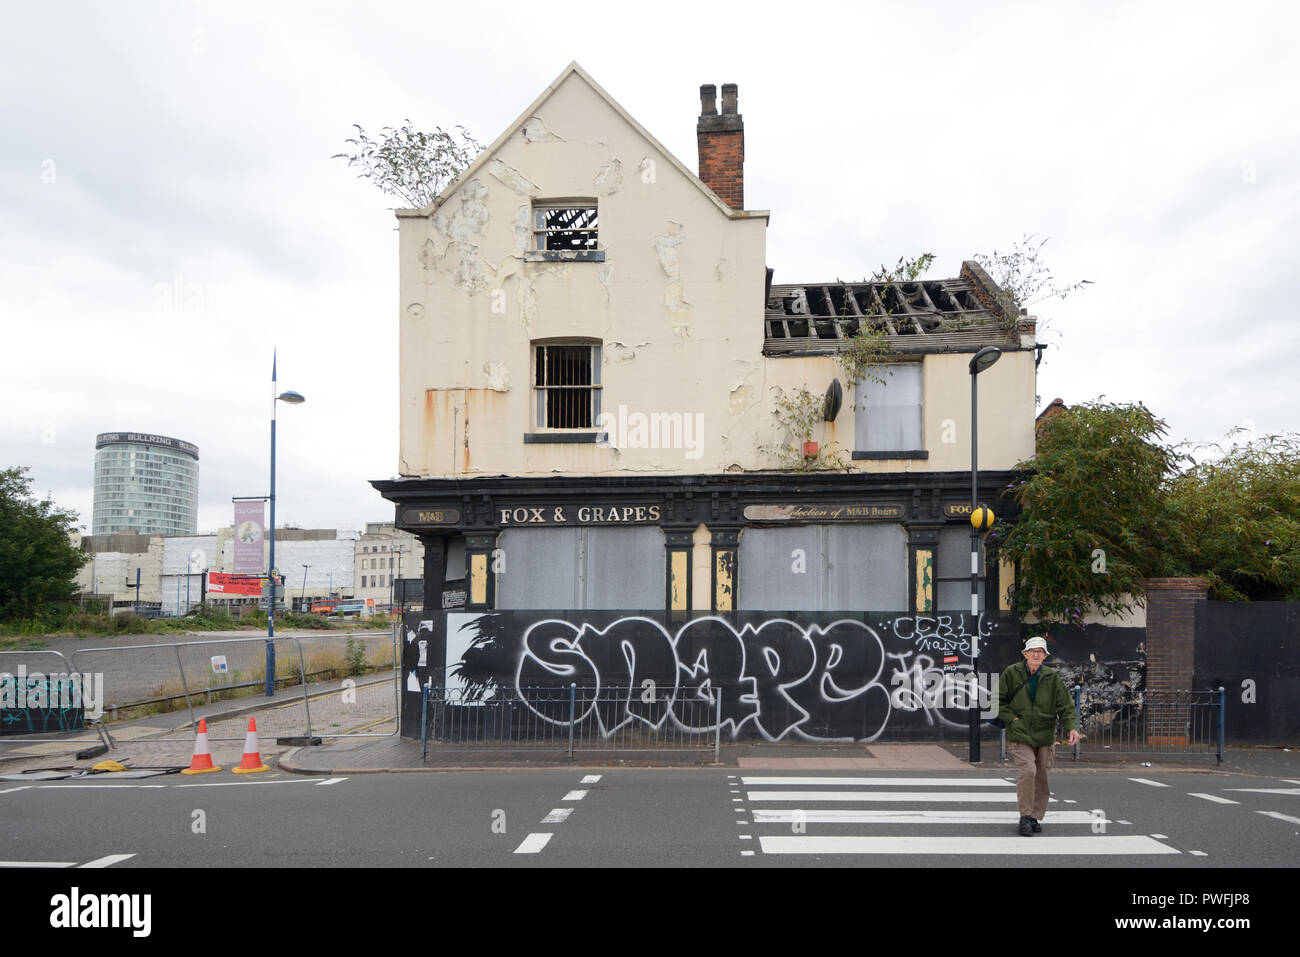 Boarded-Up Derelict Pub, the Fox and Grapes, Being Demolished for Urban Redevelopment Programme Digbeth Birmingham England - Stock Image